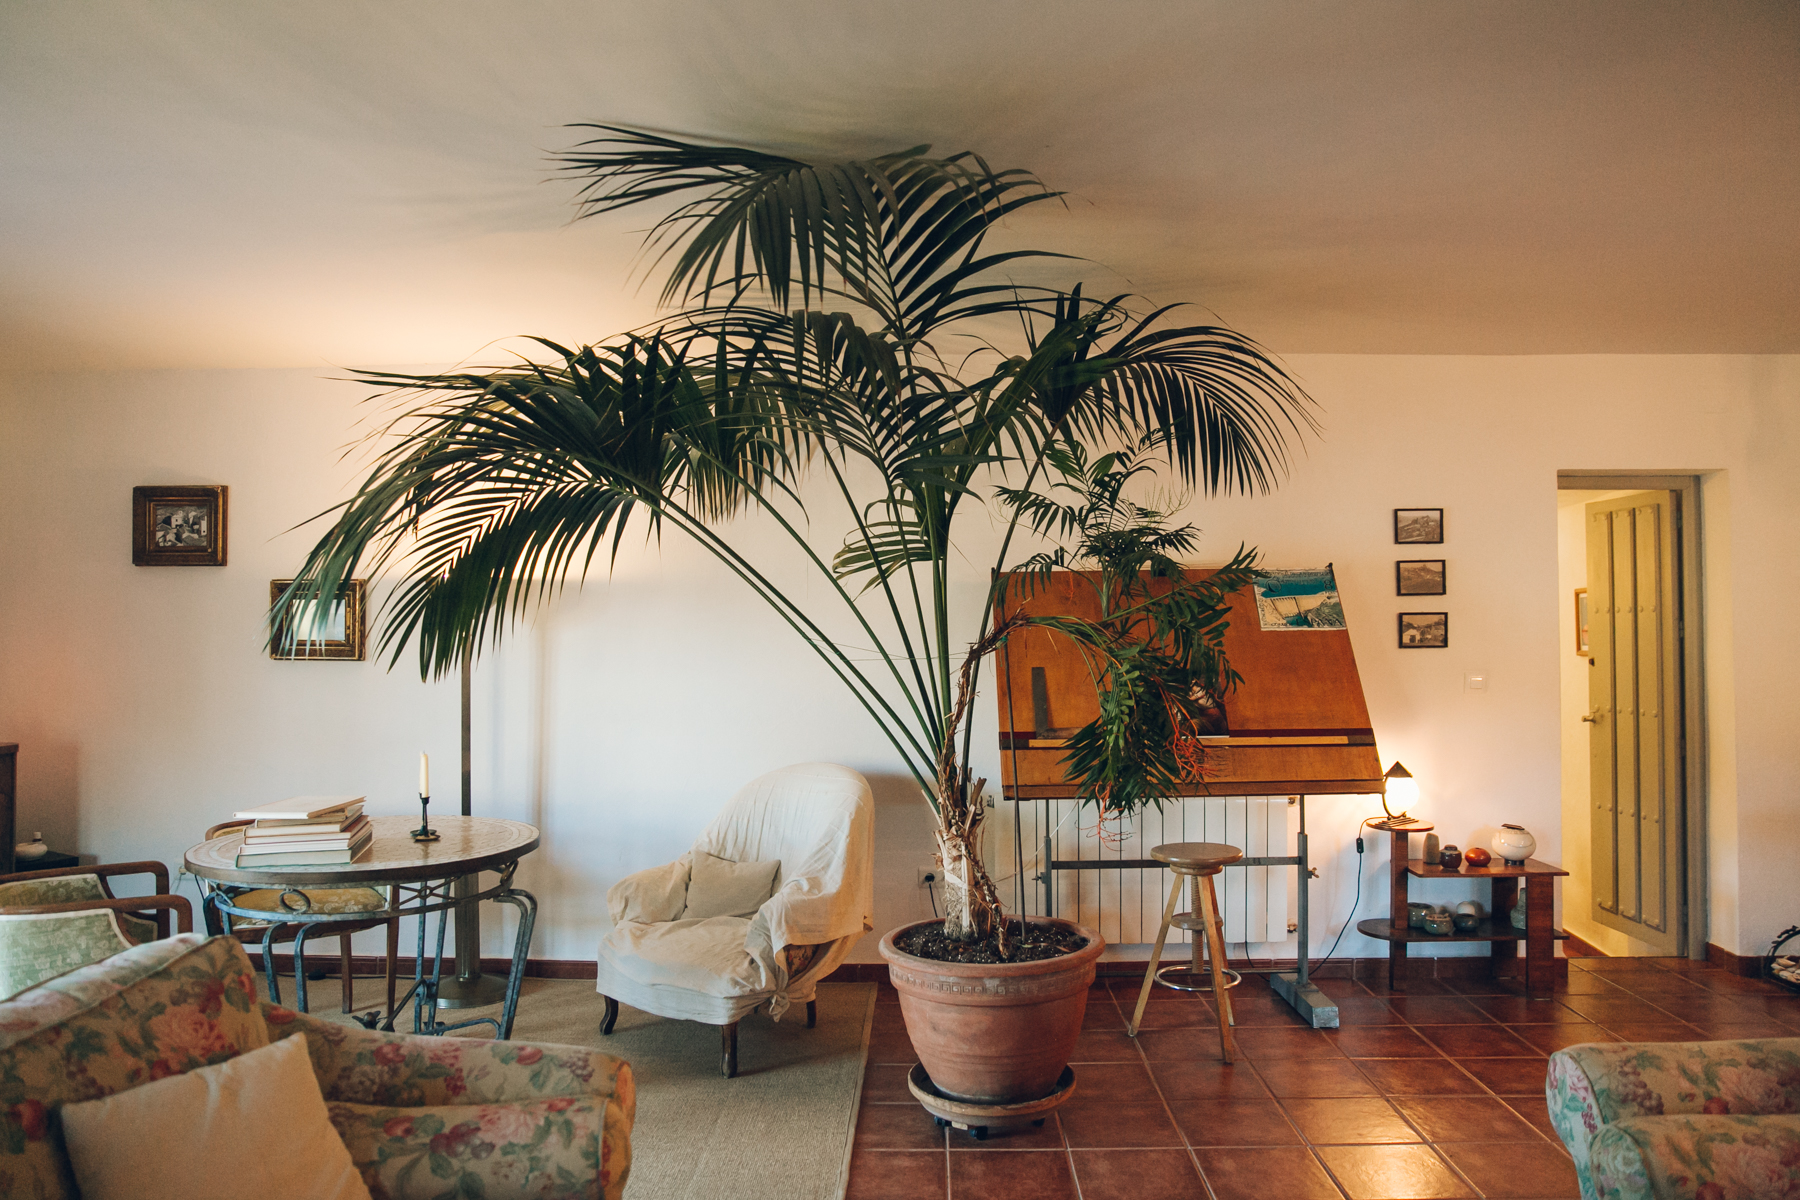 Interior details in a Spanish home with huge houseplants.